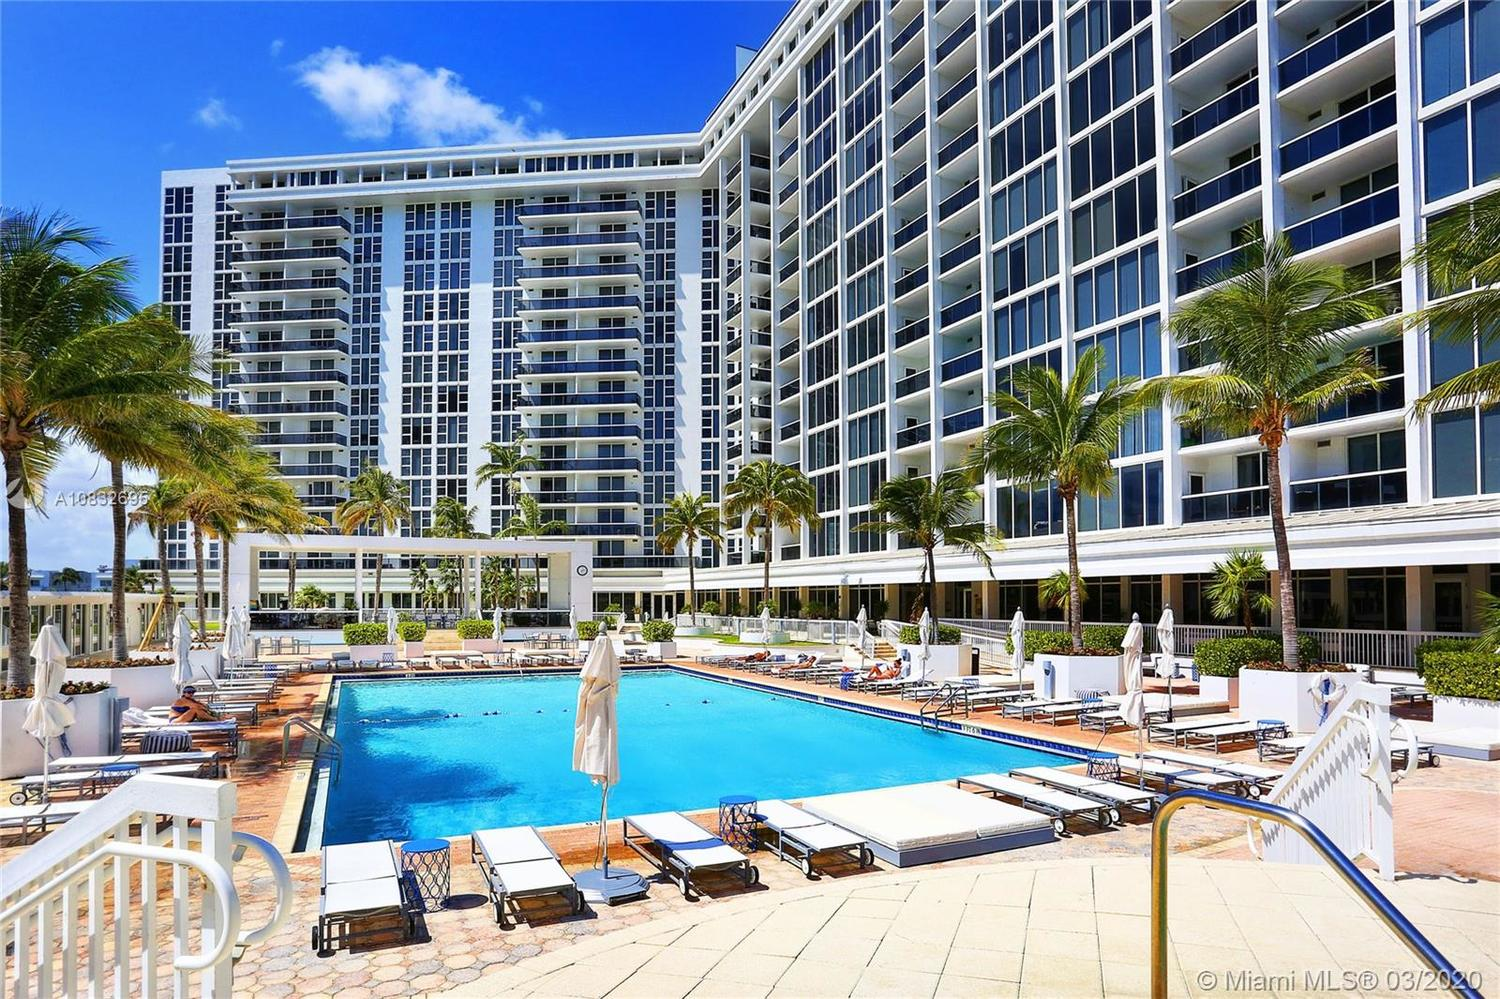 10275 Collins Avenue, Unit 412 Bal Harbour, FL 33154